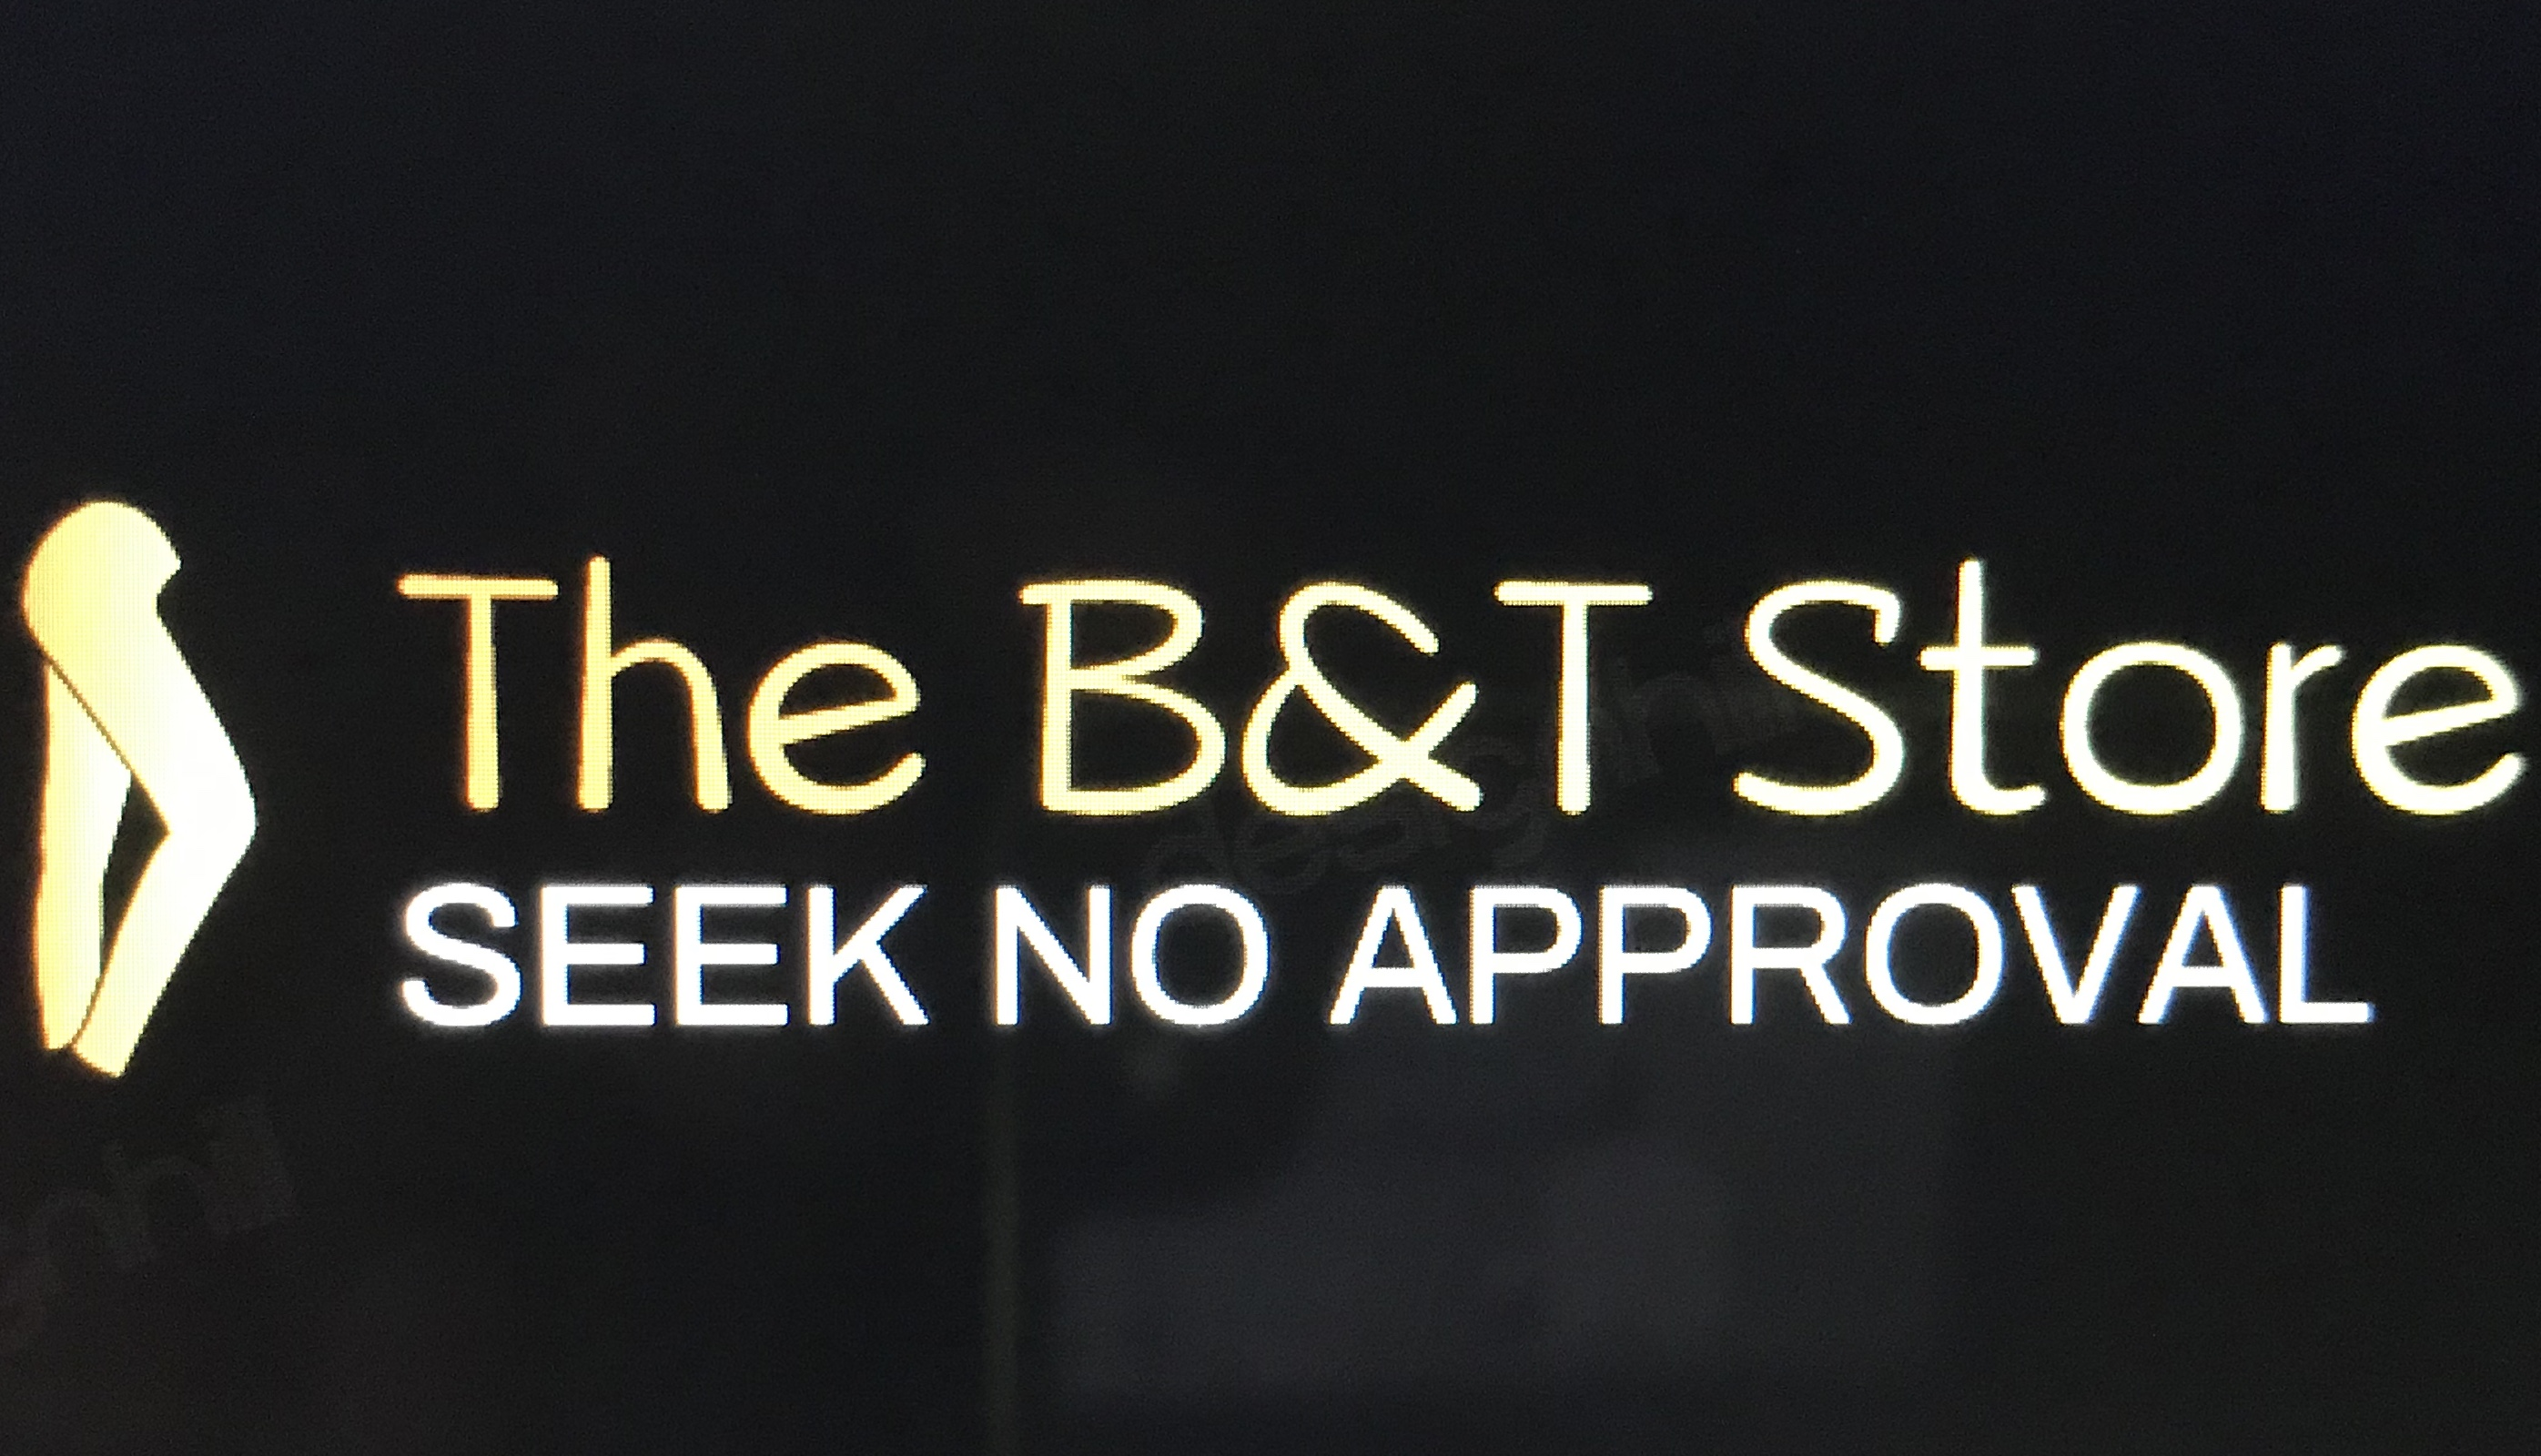 THE B&T STORE